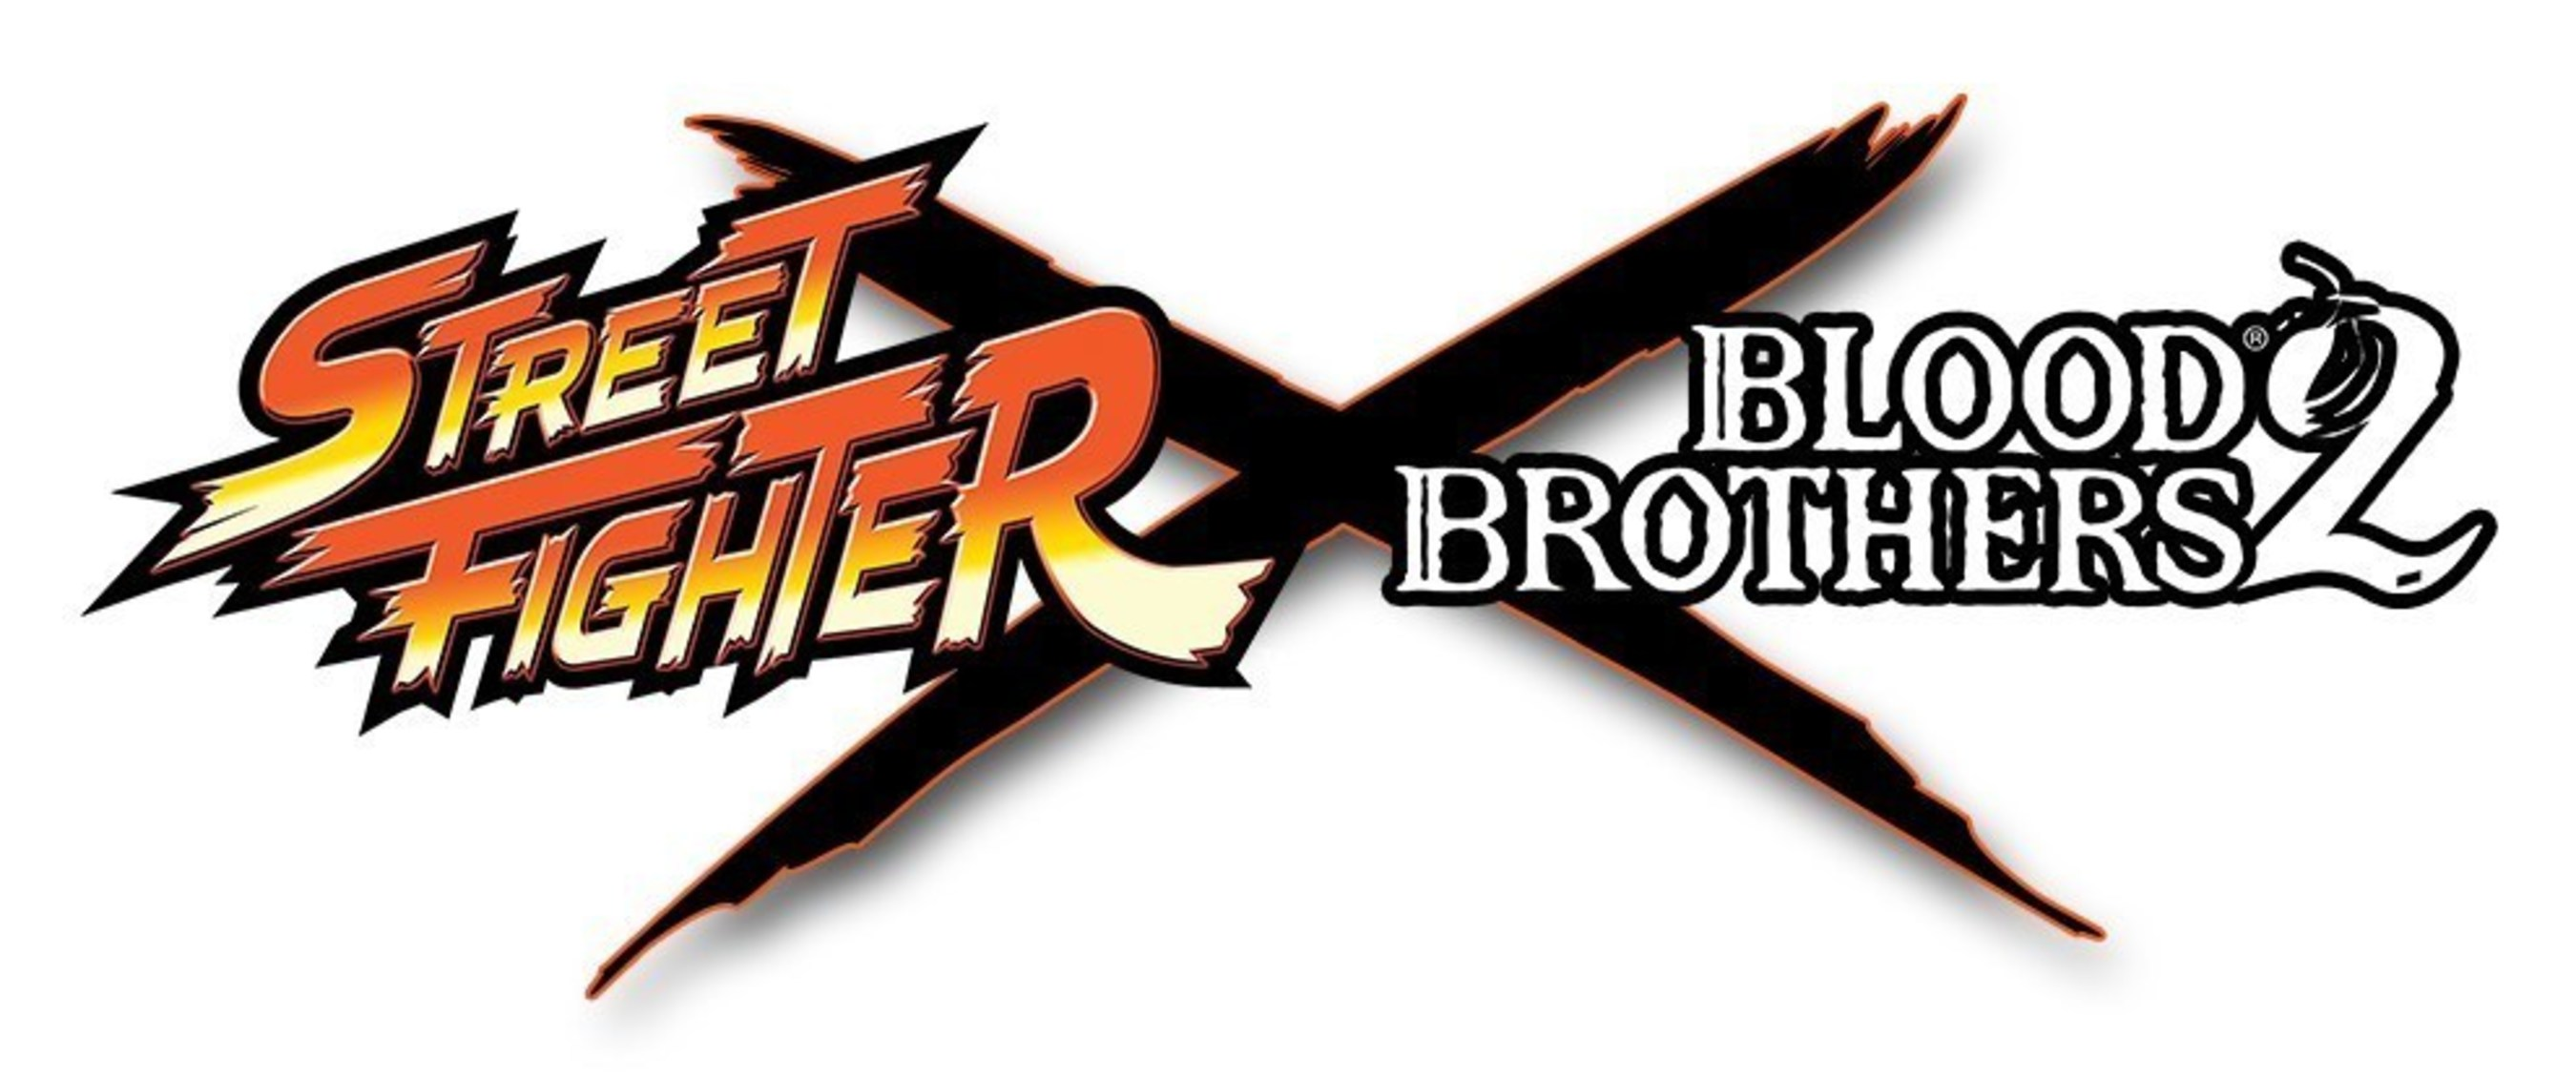 Street Fighter' Characters Punch Their Way Into Blood Brothers 2 In Special Limited Time Events